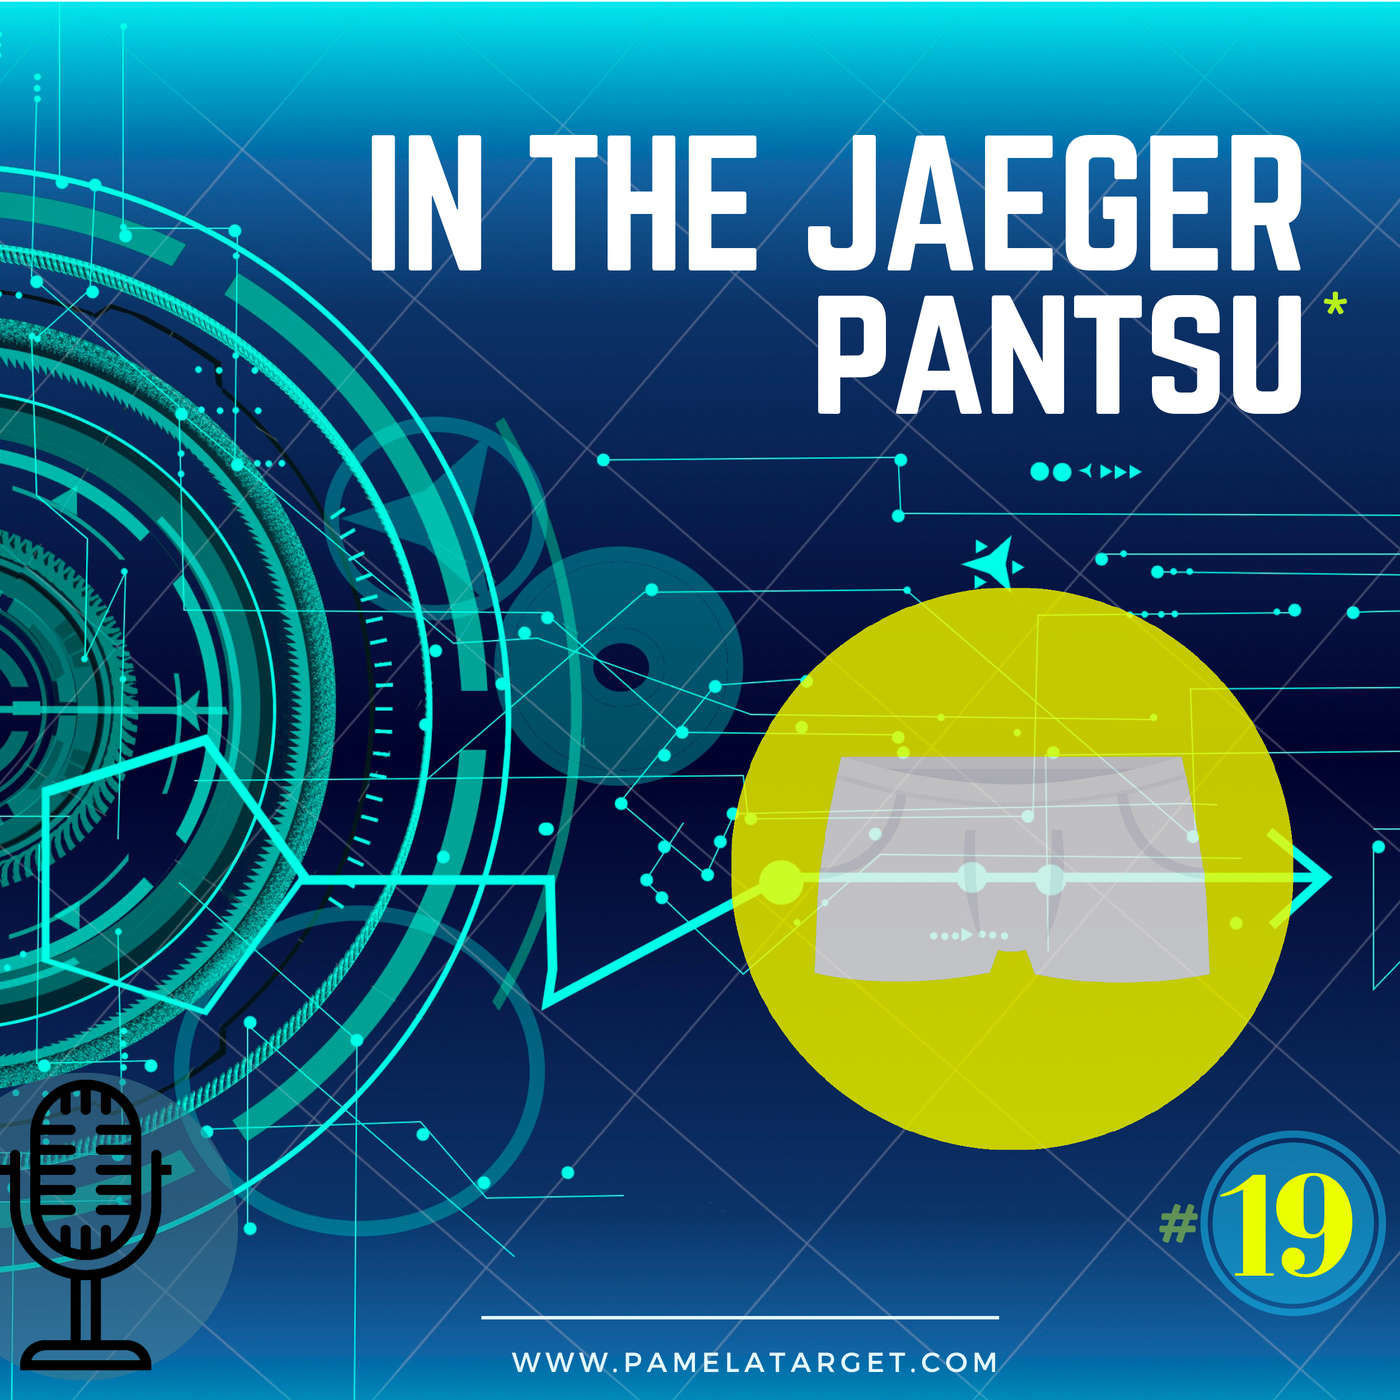 S01E19 In the JAEGER pantsu